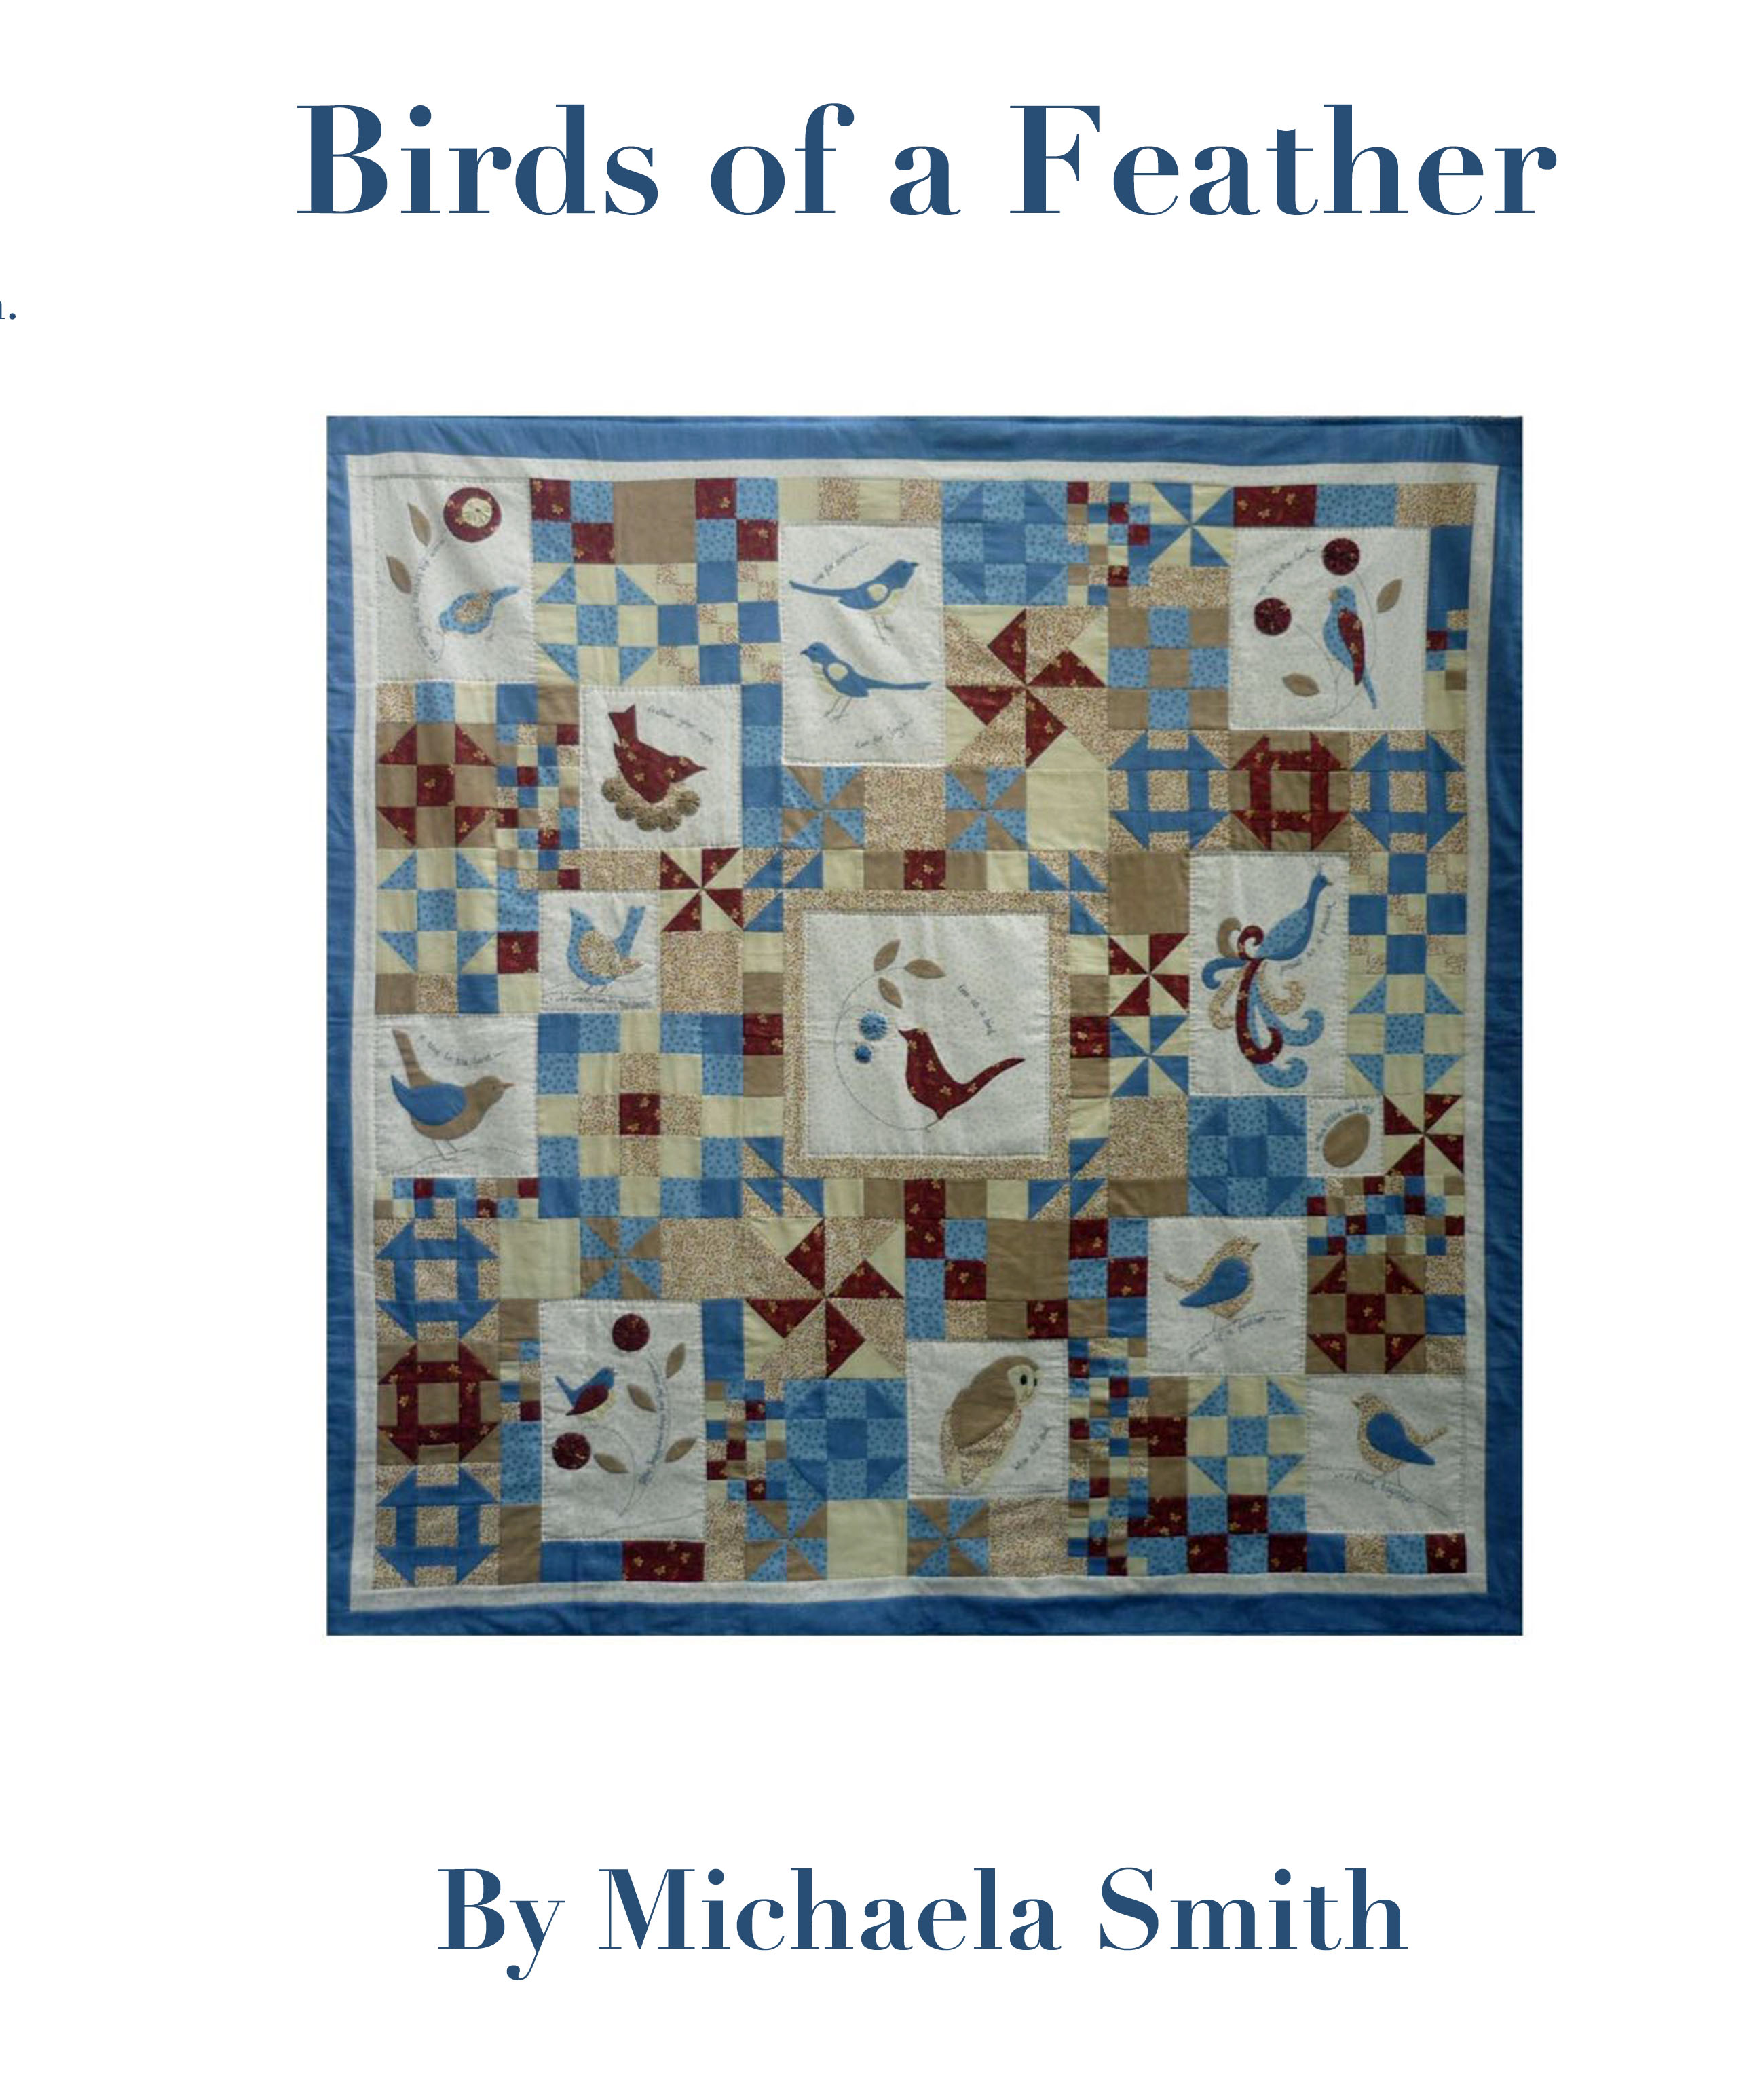 Birds of a Feather patchwork quilt sewing pattern, instruction book.